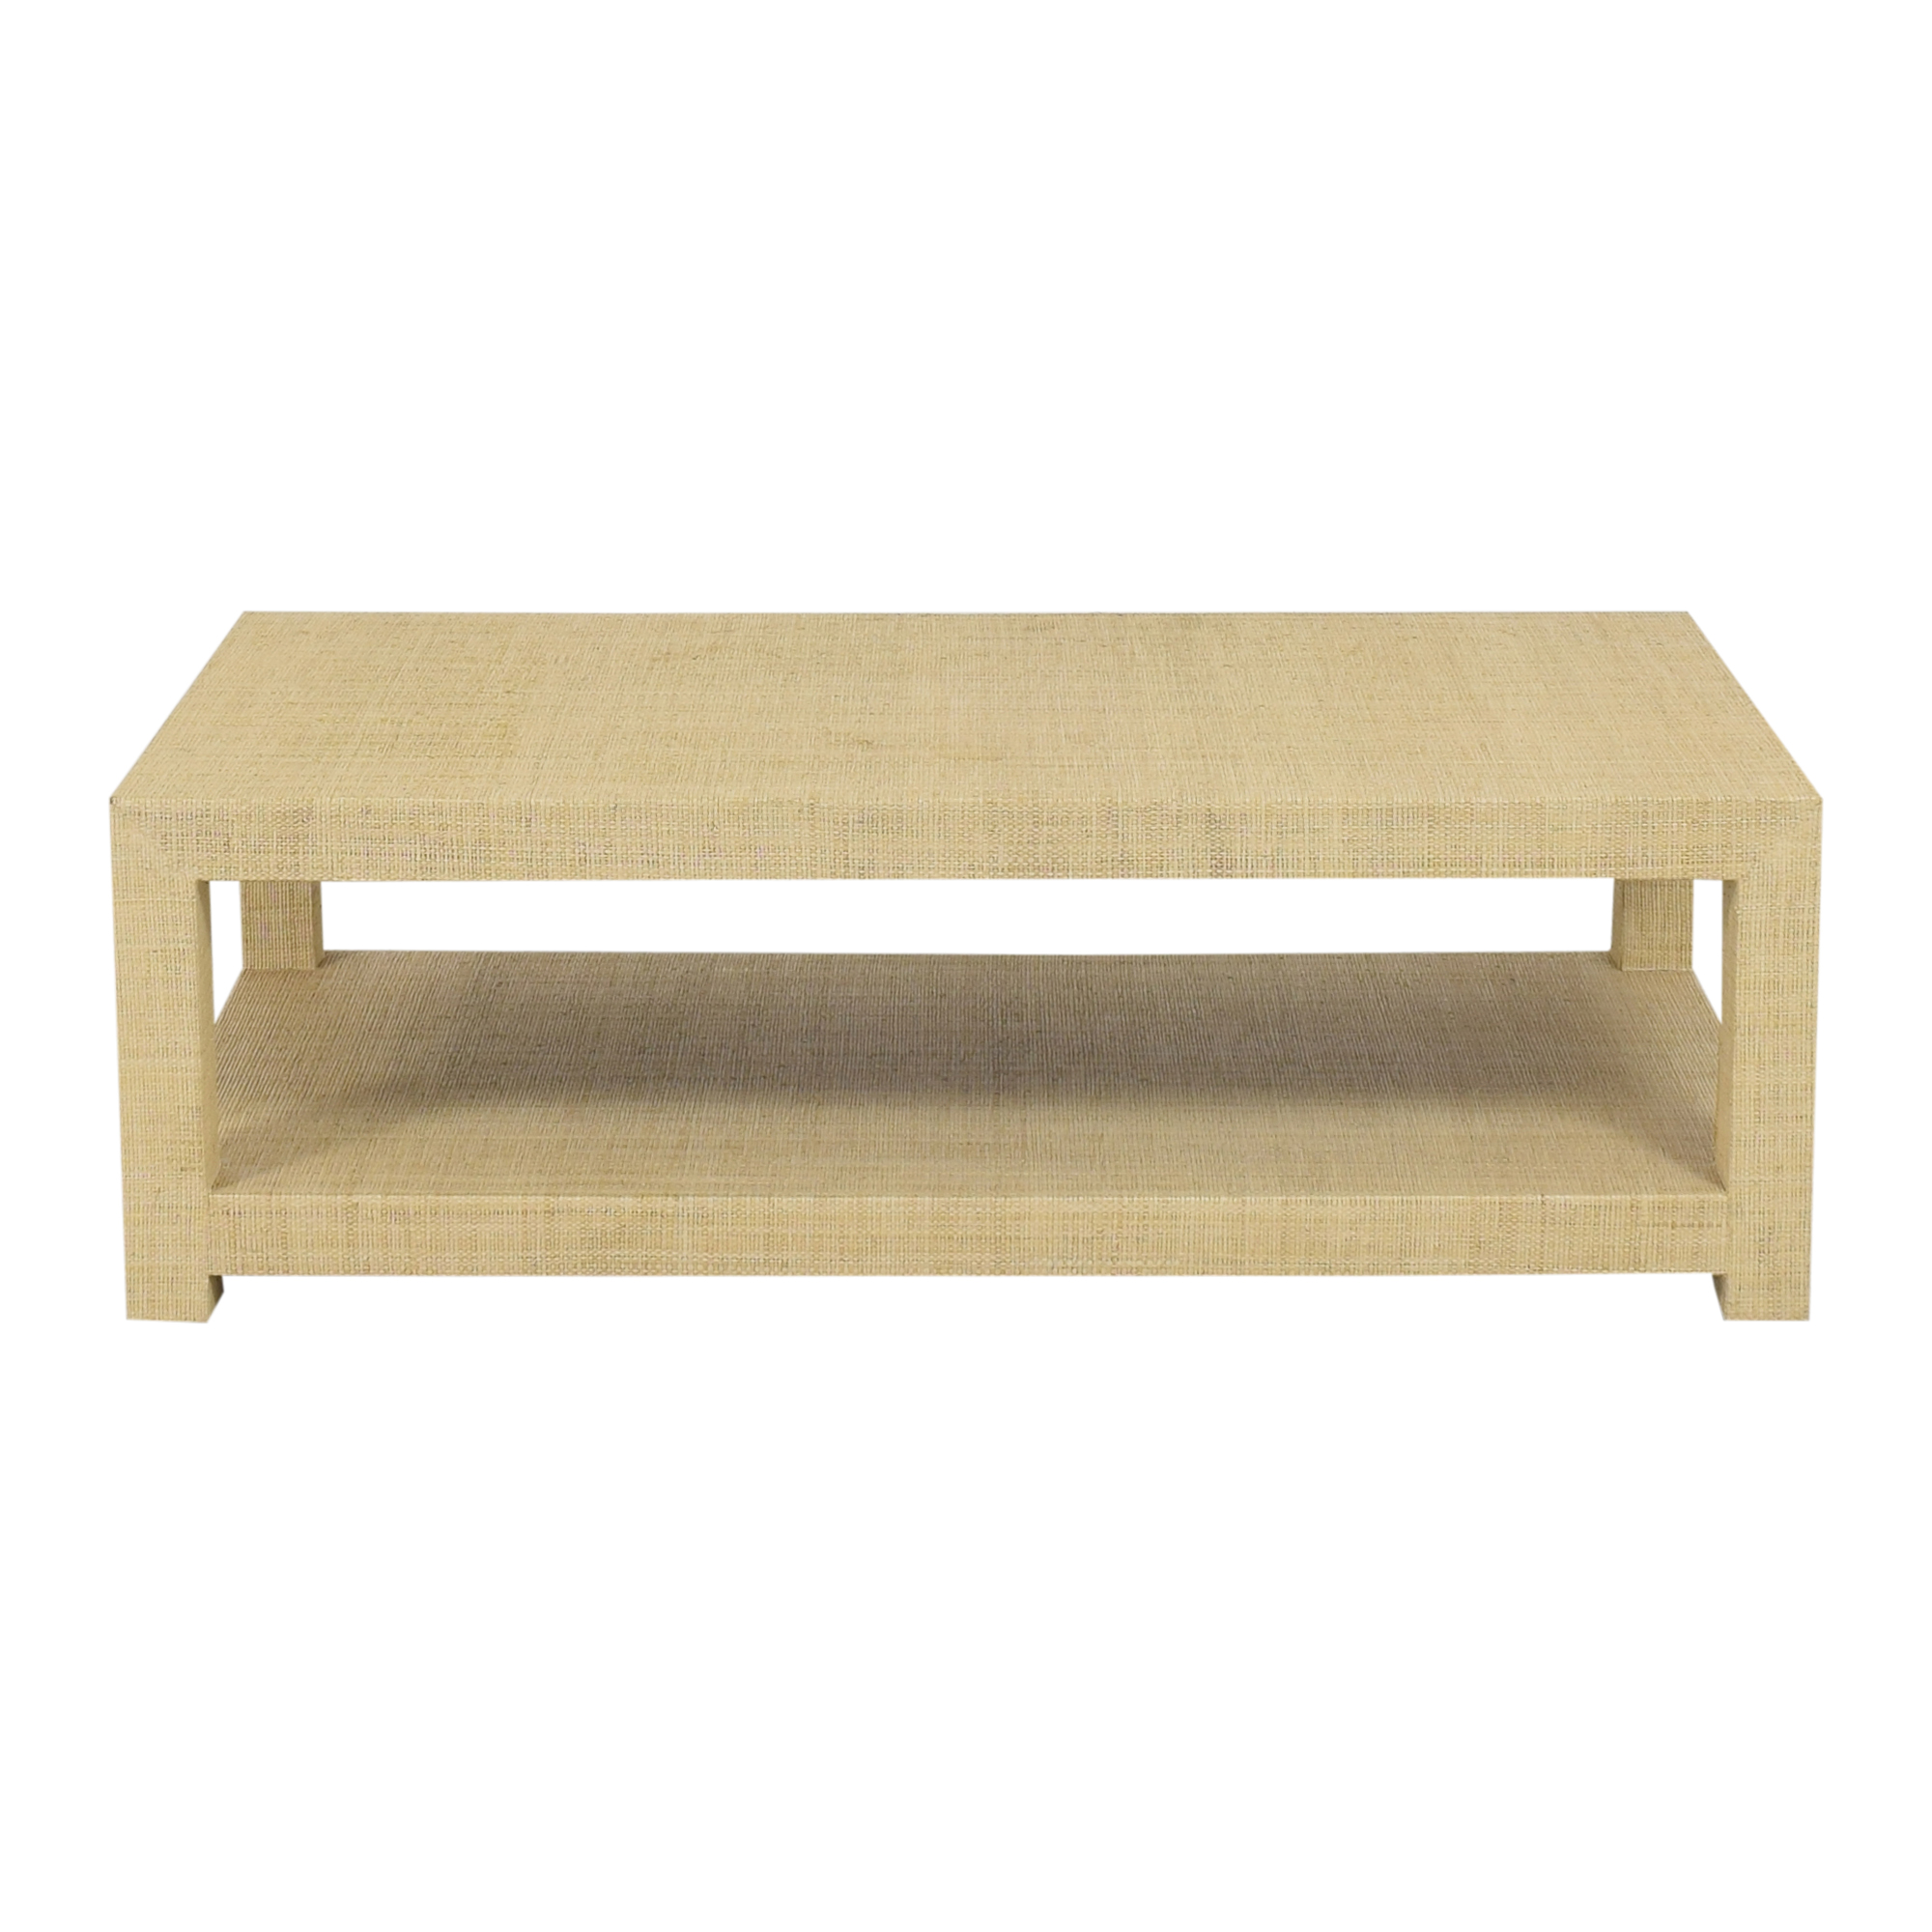 Serena & Lily Serena & Lily Blake Rectangular Coffee Table for sale